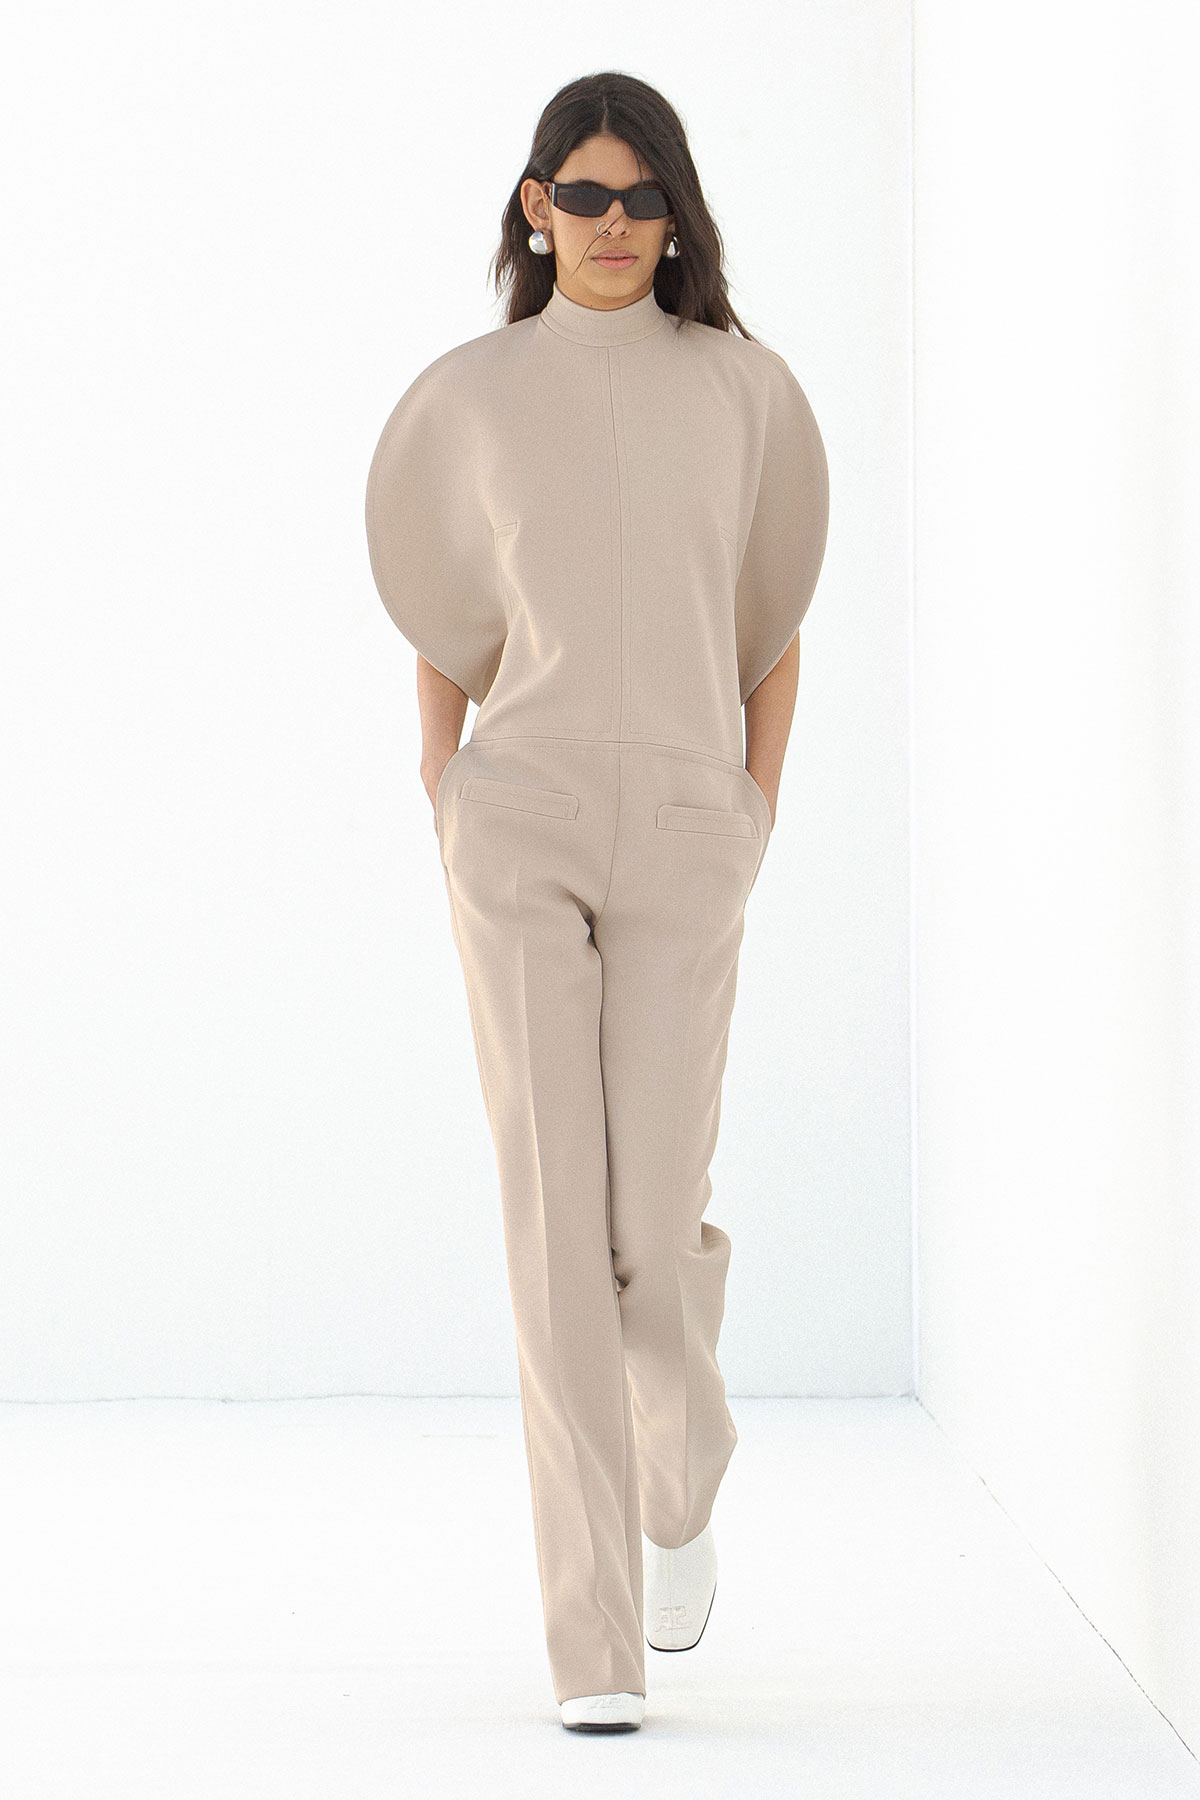 courreges-fall-winter-2021